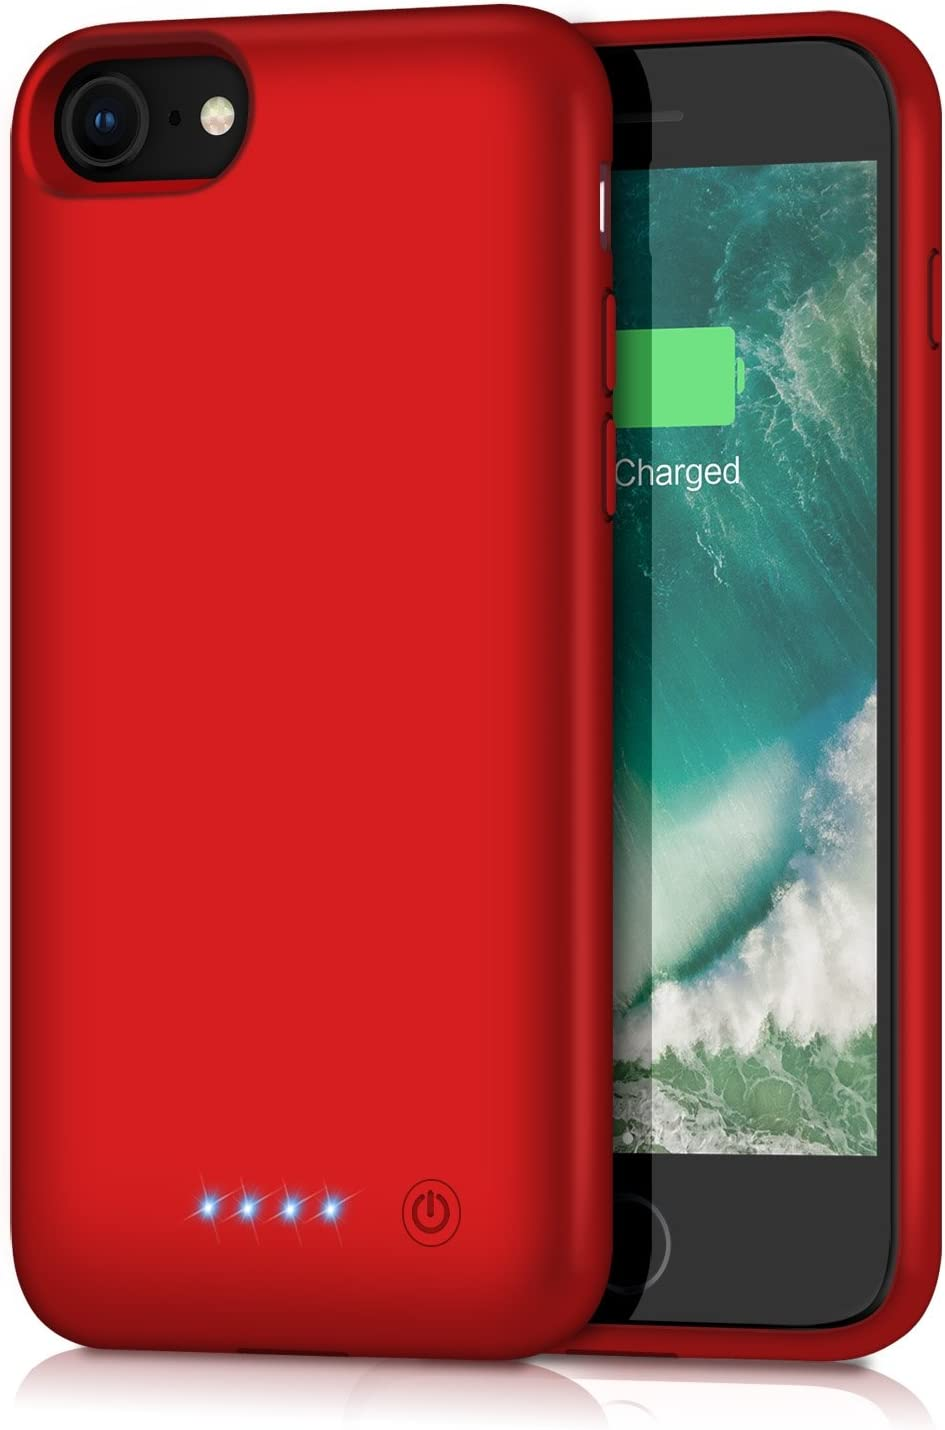 ABOE Battery Case for iPhone 8/7/6s/6/SE(2020), [6000mAh] Upgraded Charging Case Rechargeable Battery Pack for iPhone 8/7 Portable Charger case for iPhone 6S/6 /SE(2020)(4.7 inch)-[Red]